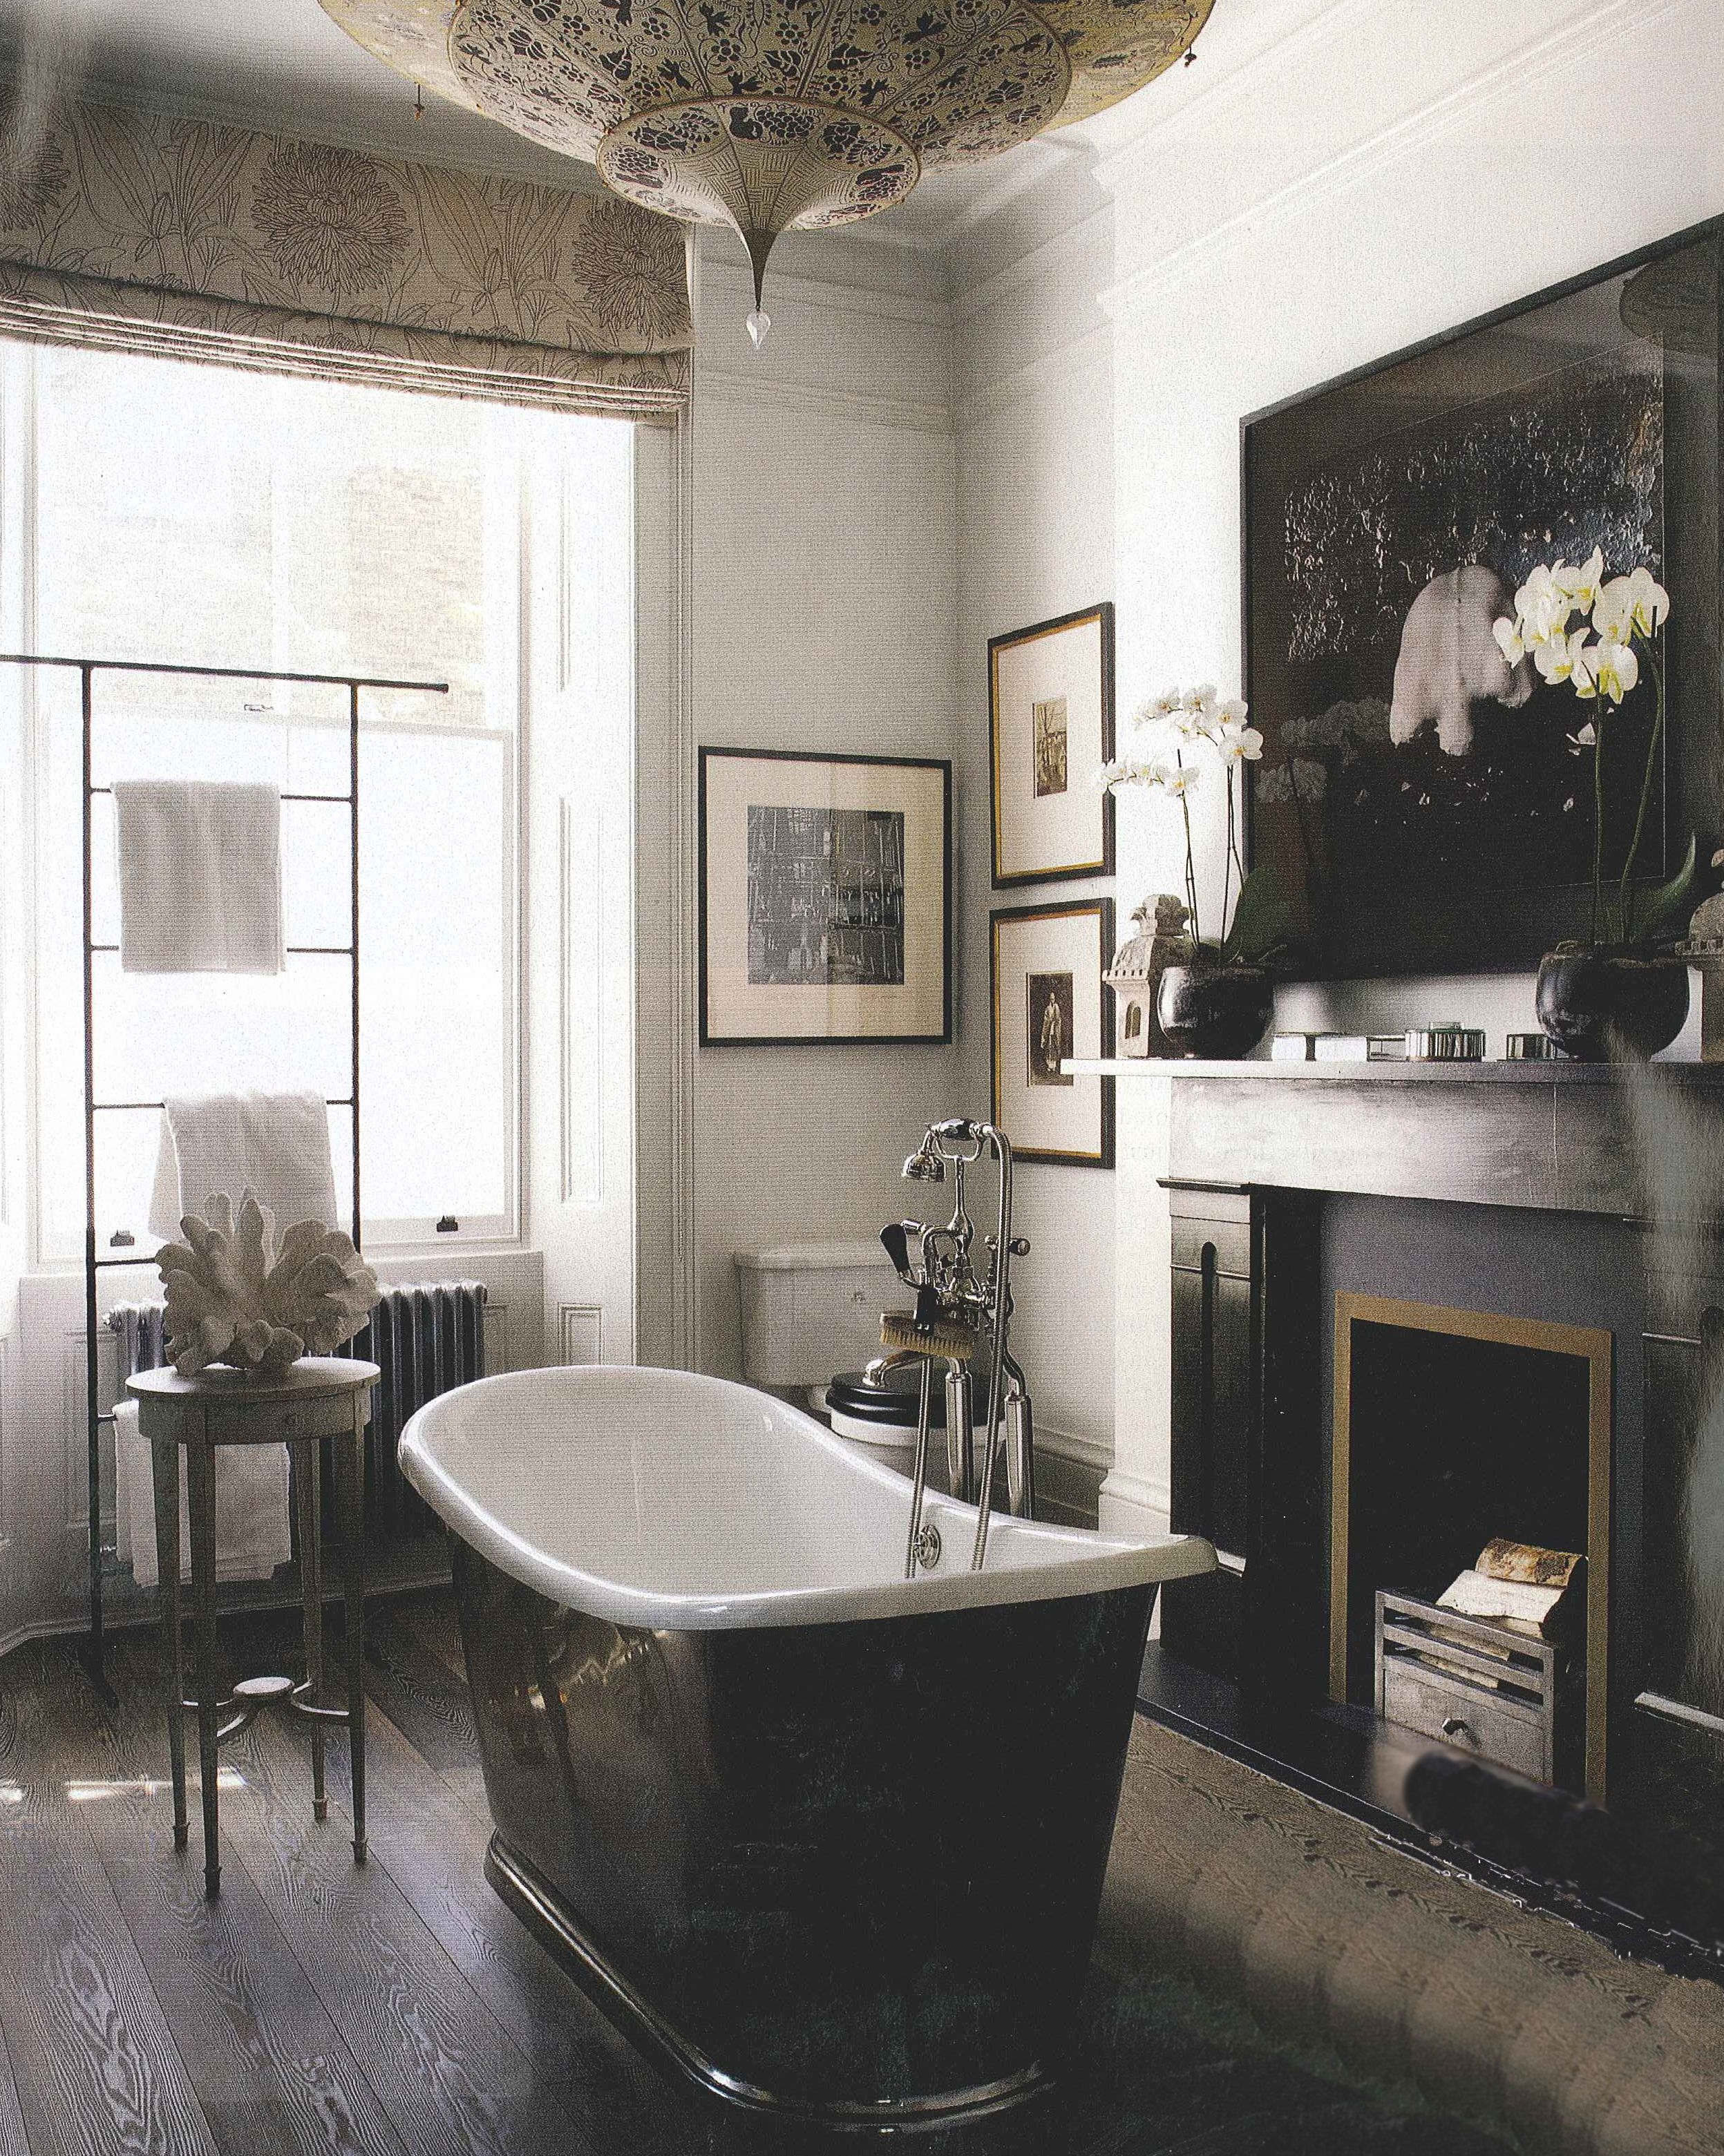 photograph of a vintage tub in a bathroom